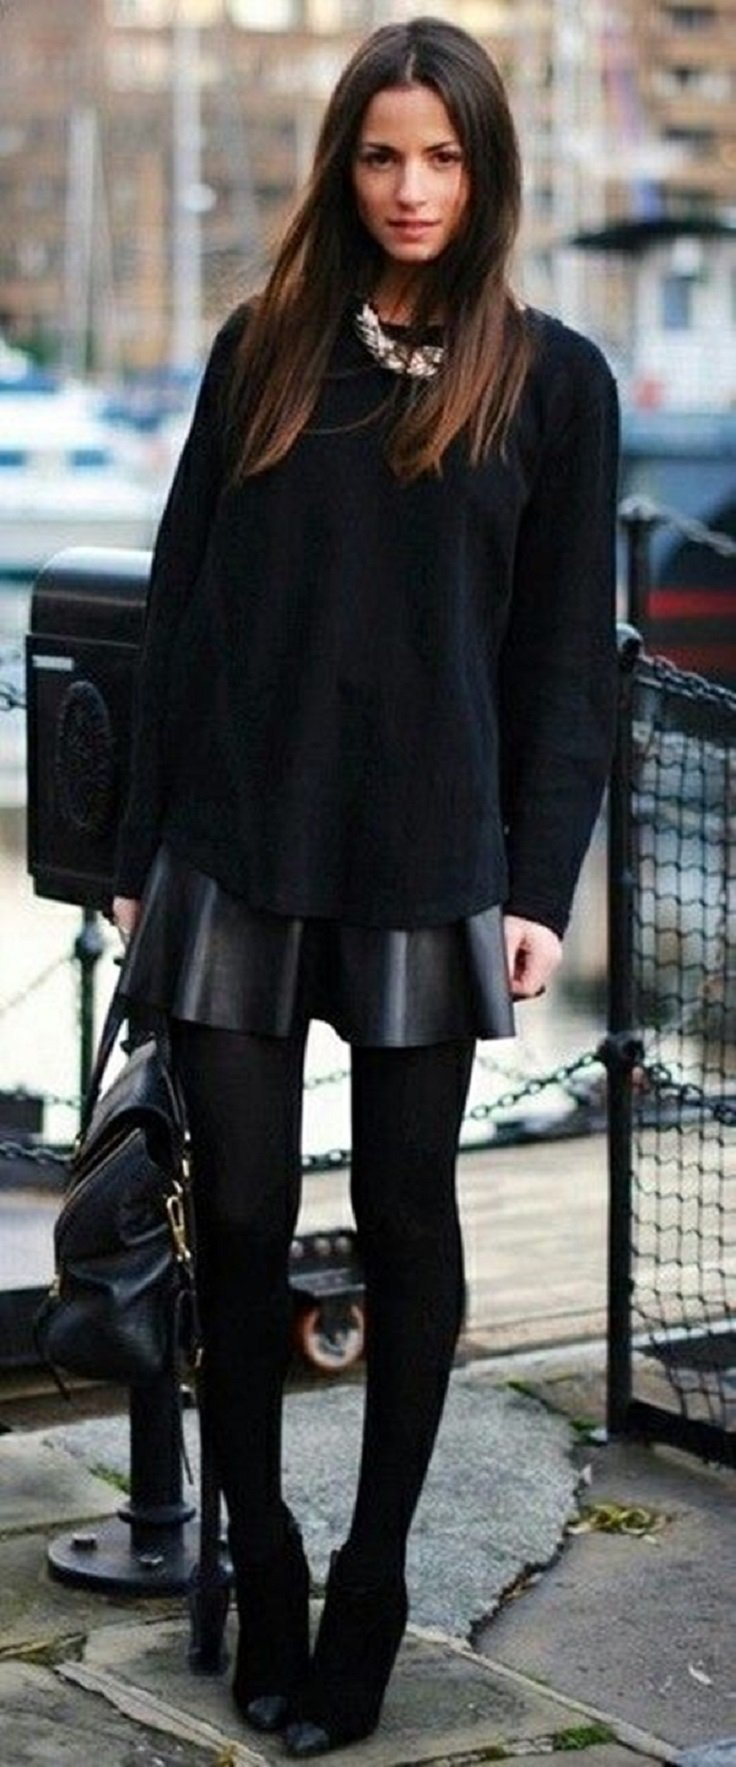 M&J Trimming - Layered Outfit